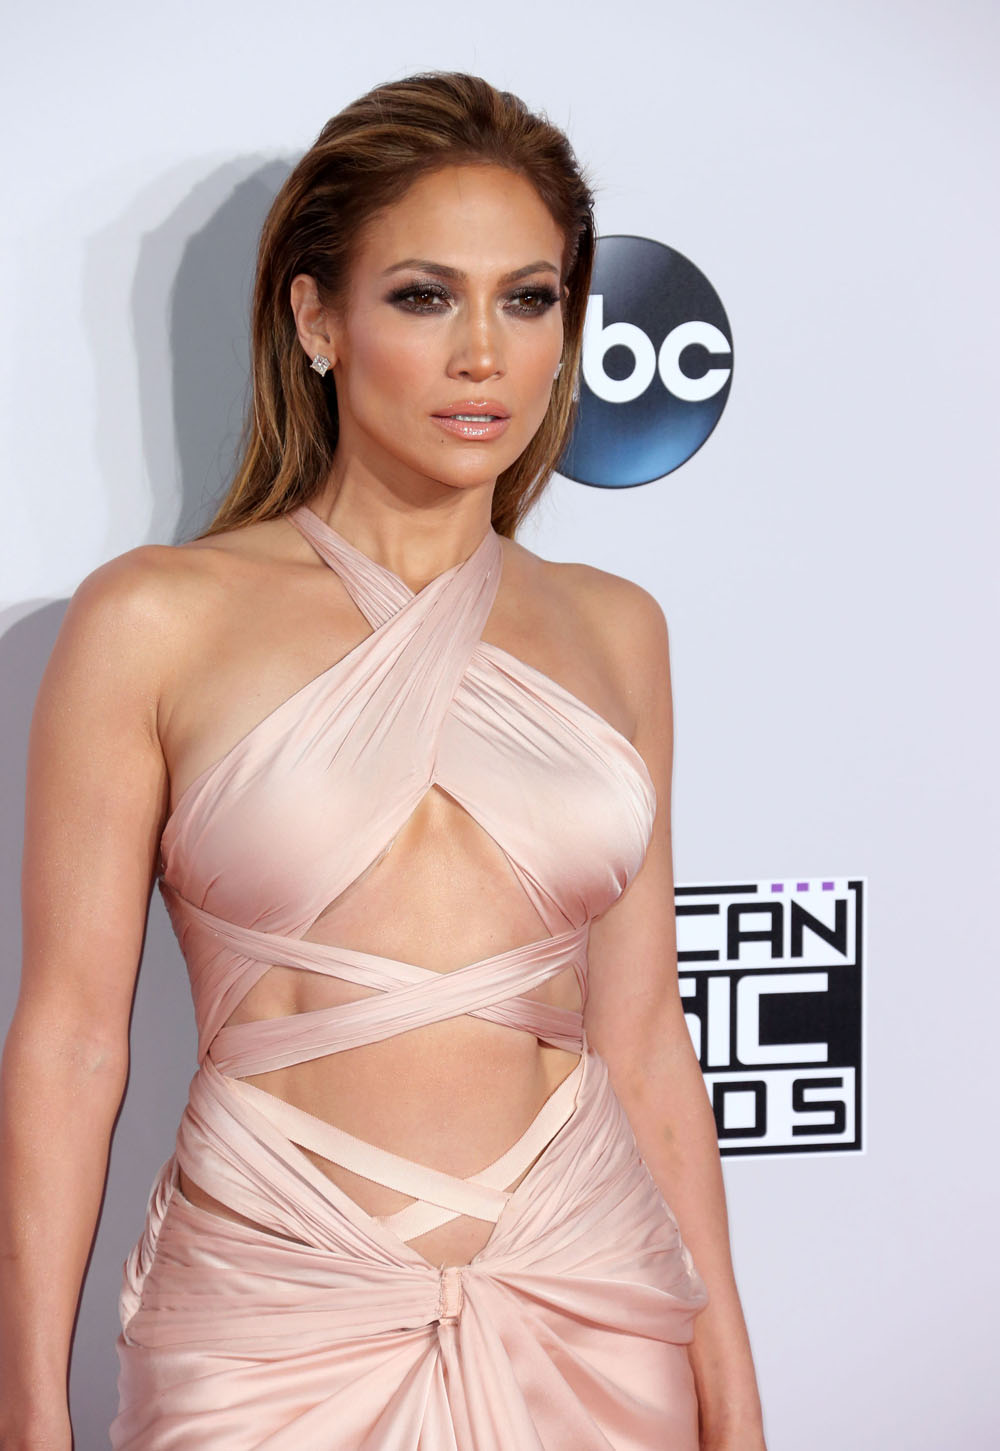 51593640 Celebrities arriving at the 2014 American Music Awards at the Nokia Theatre in Los Angeles, California on November 23, 2014. Celebrities arriving at the 2014 American Music Awards at the Nokia Theatre in Los Angeles, California on November 23, 2014. Pictured: Jennifer Lopez FameFlynet, Inc - Beverly Hills, CA, USA - +1 (818) 307-4813